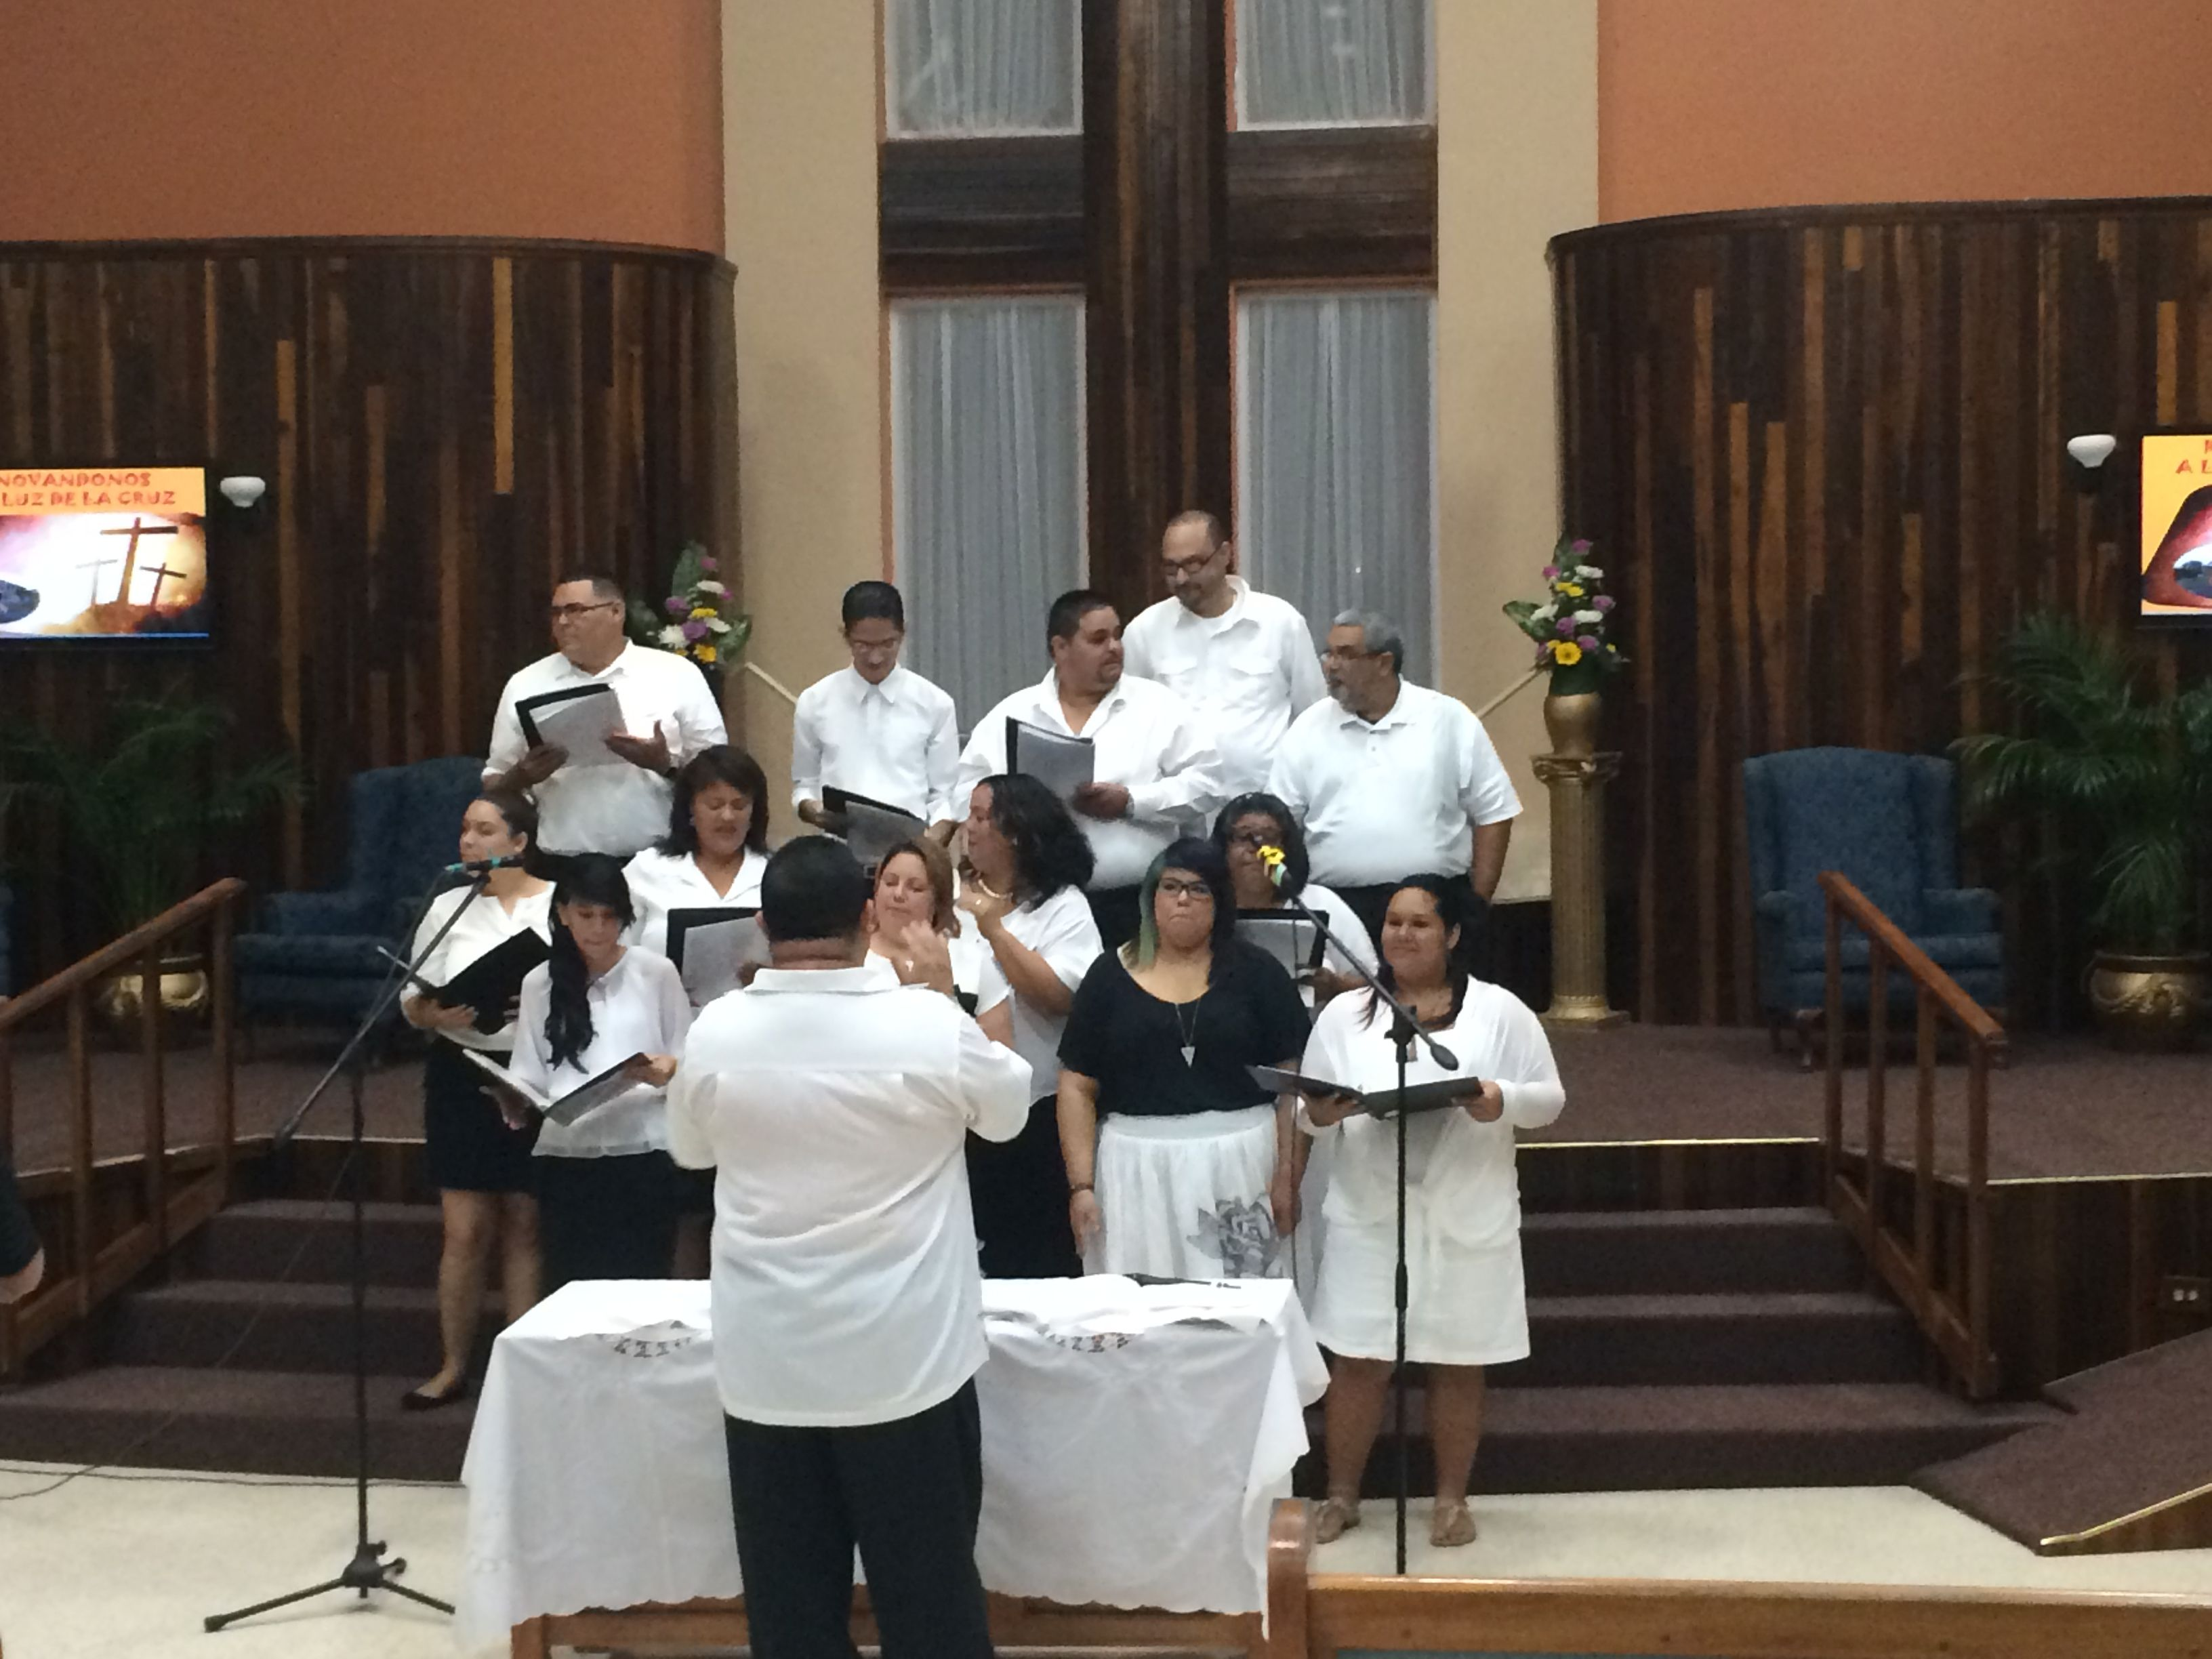 Choir of the baptist church of celada sing to the Lord